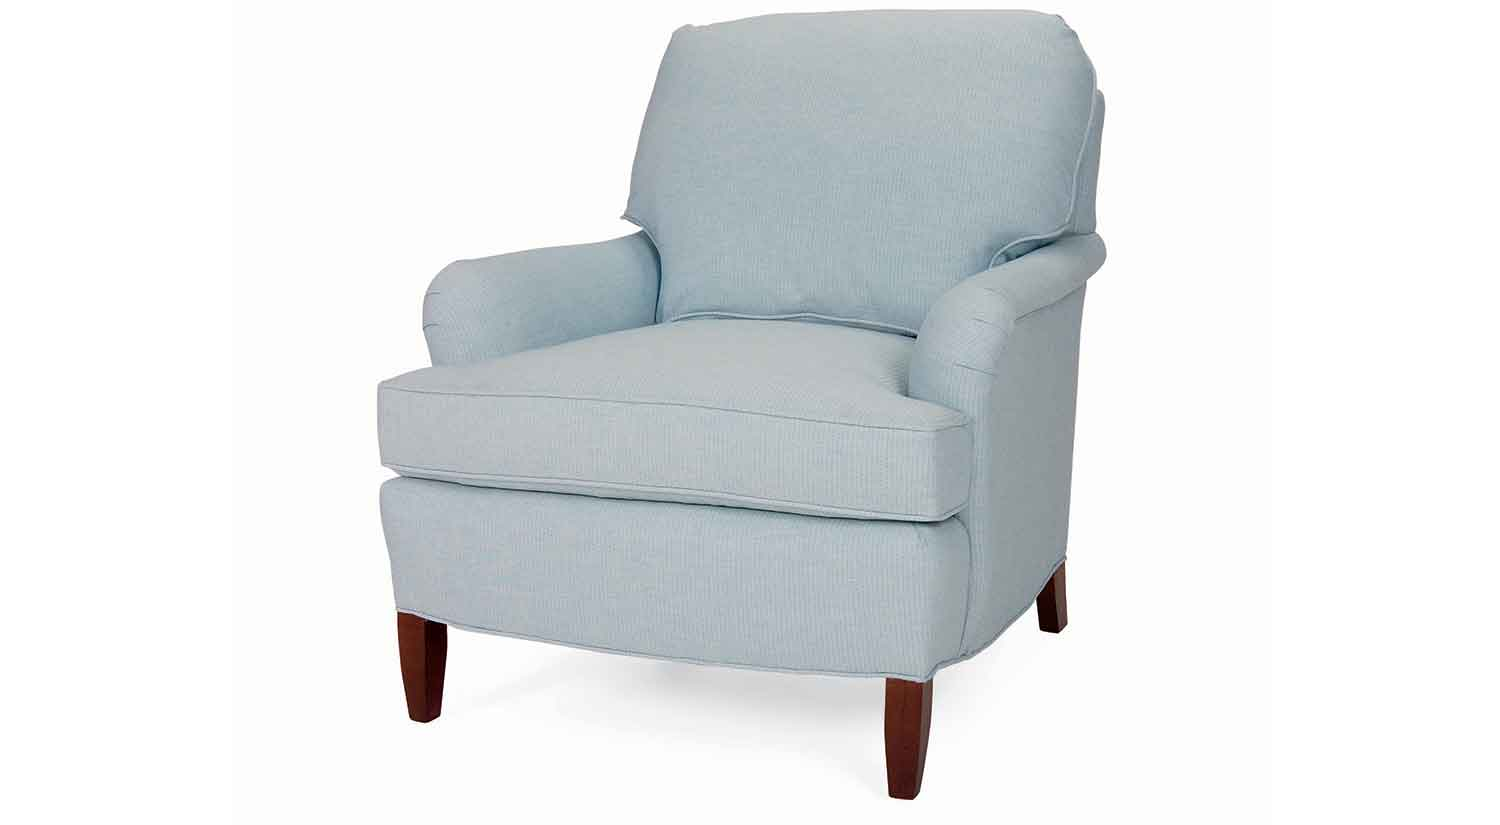 Circle Furniture - Scout Chair  Chair  Boston Furniture  Circle ...